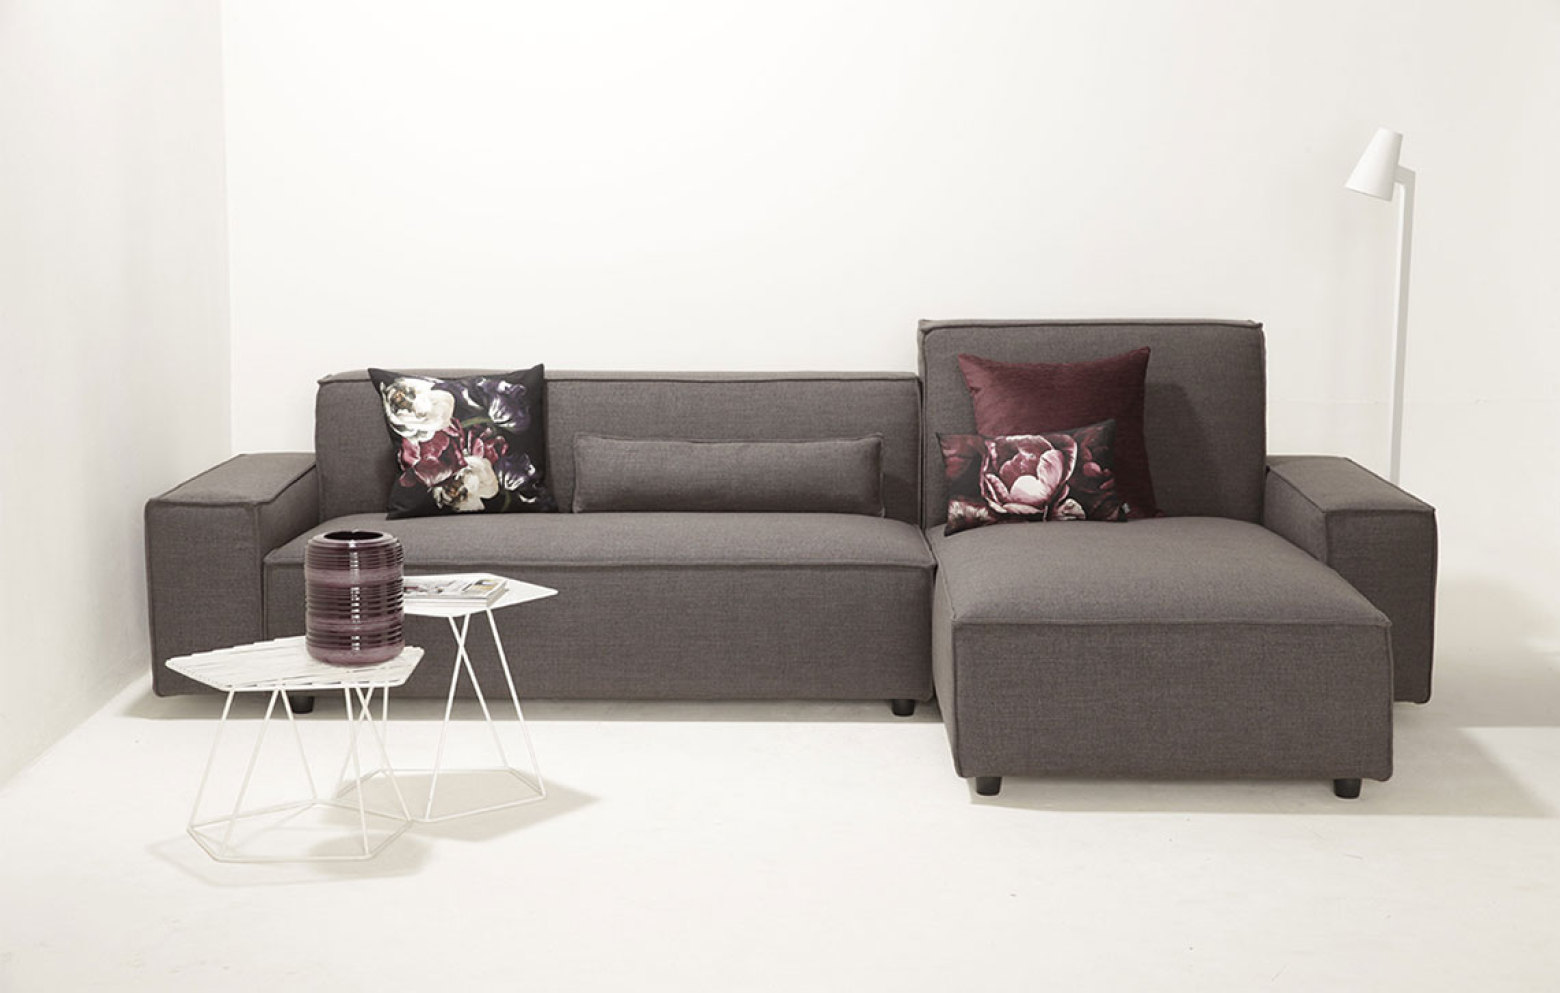 Ecksofas Outlet Bari Ecksofa Sofas Online Outlet Who S Perfect